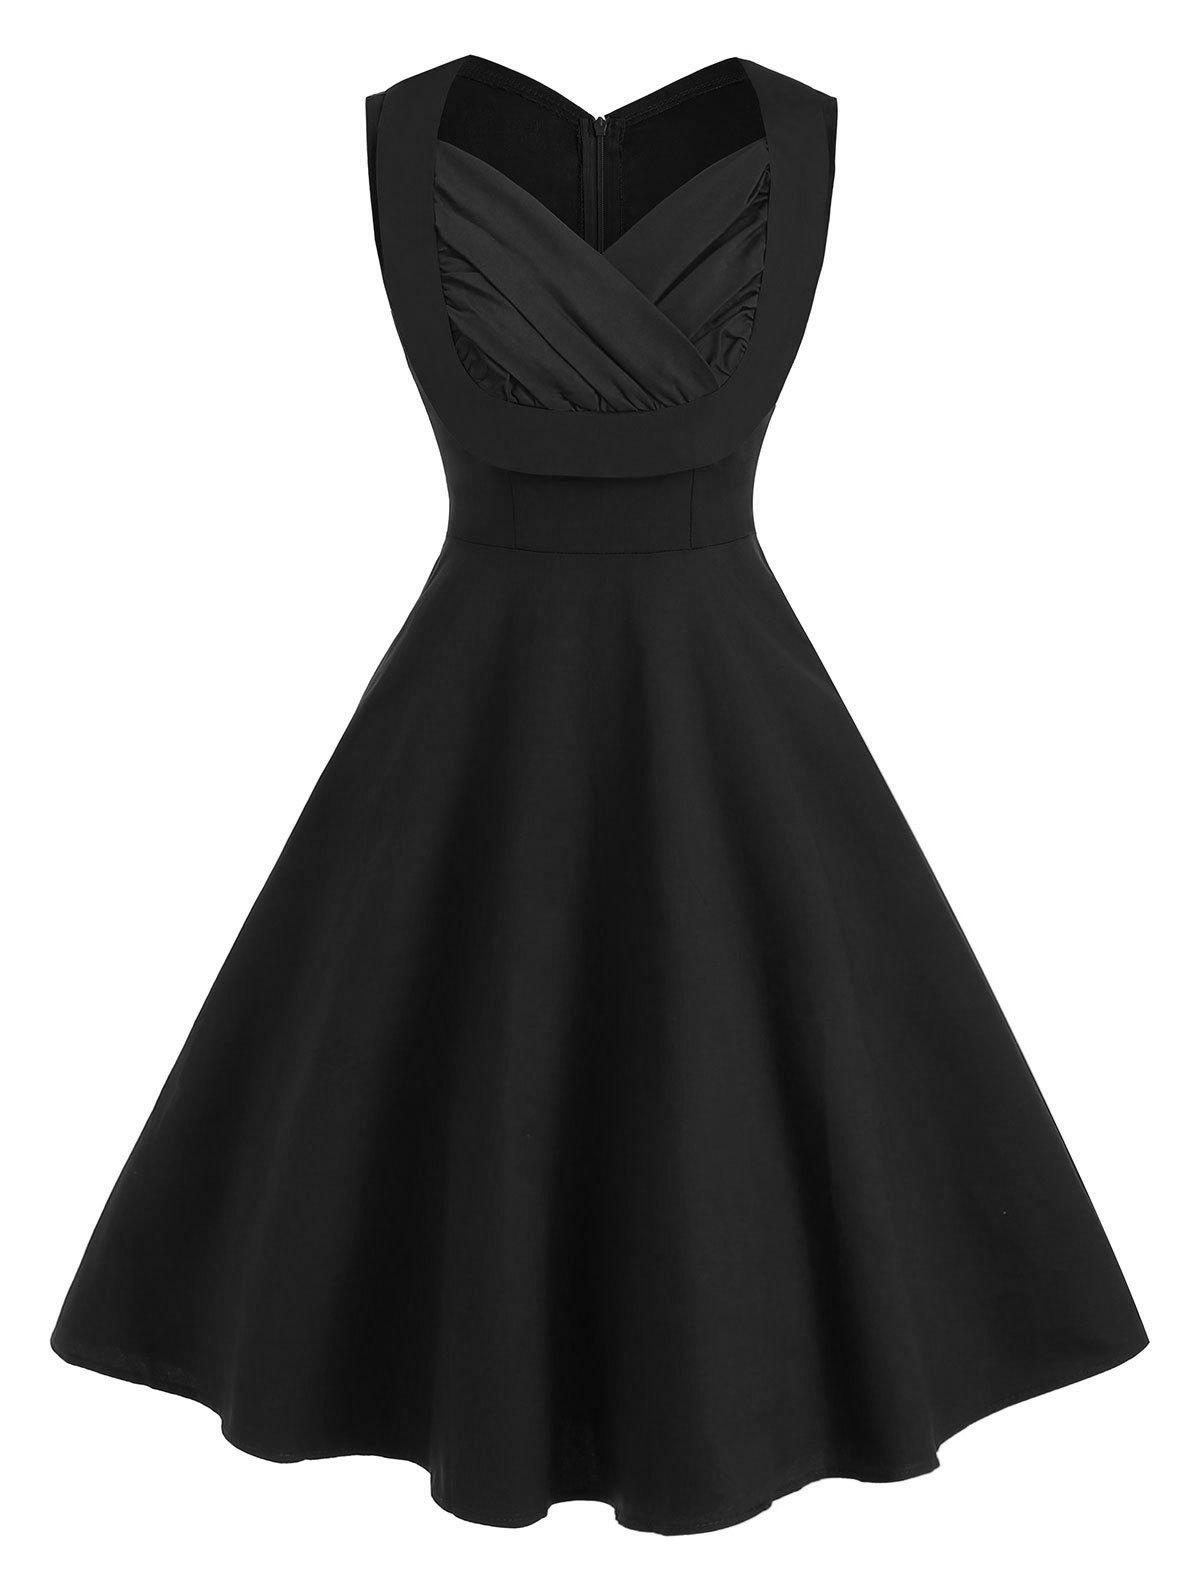 Fashion Sweetheart Neck Ruched A Line Sleeveless Vintage Dress